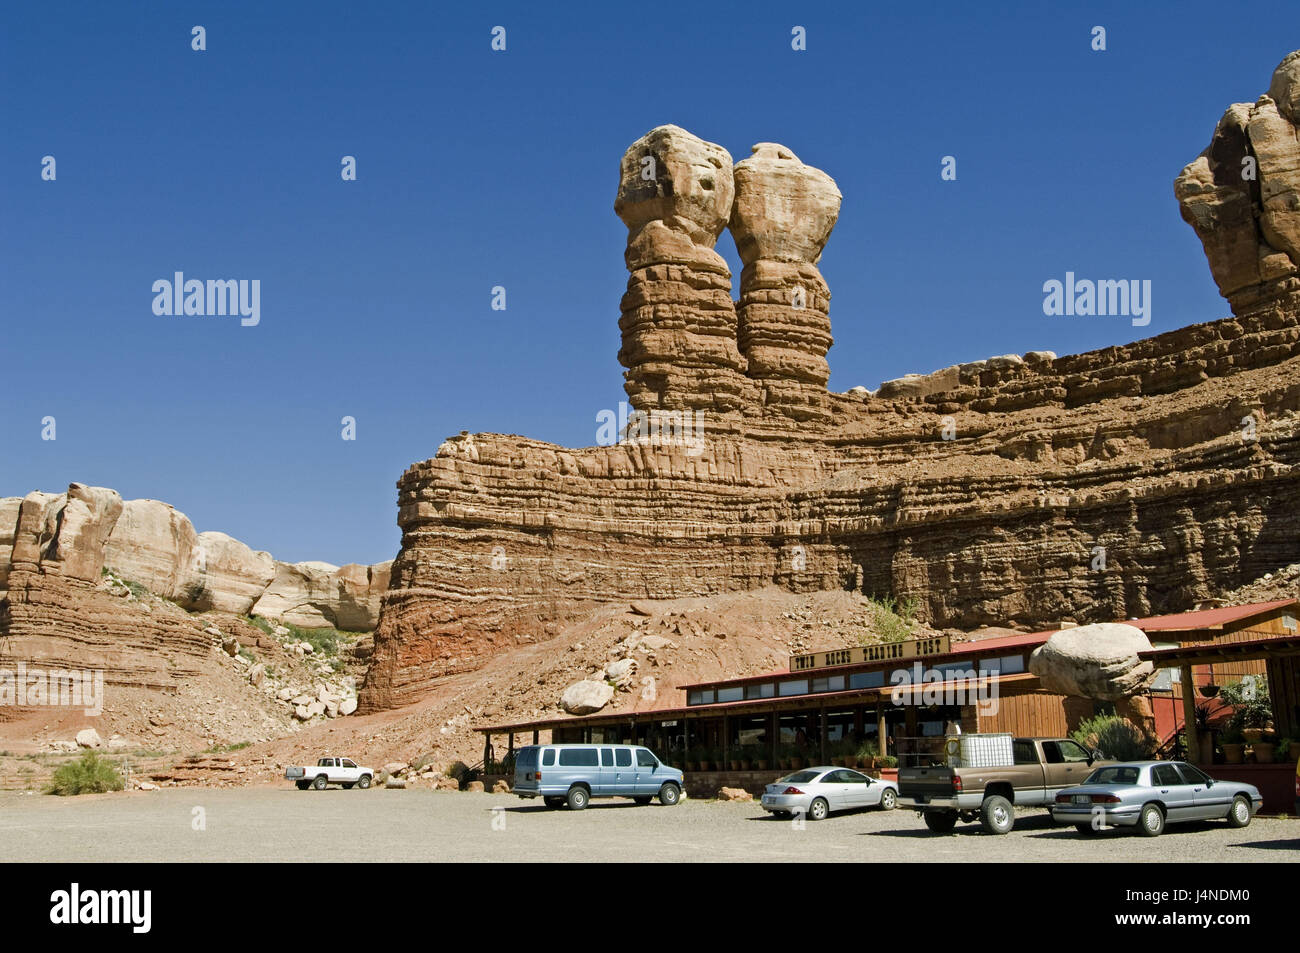 The USA, Utah, bluff, Twin of rock, post-office buildings, car, - Stock Image